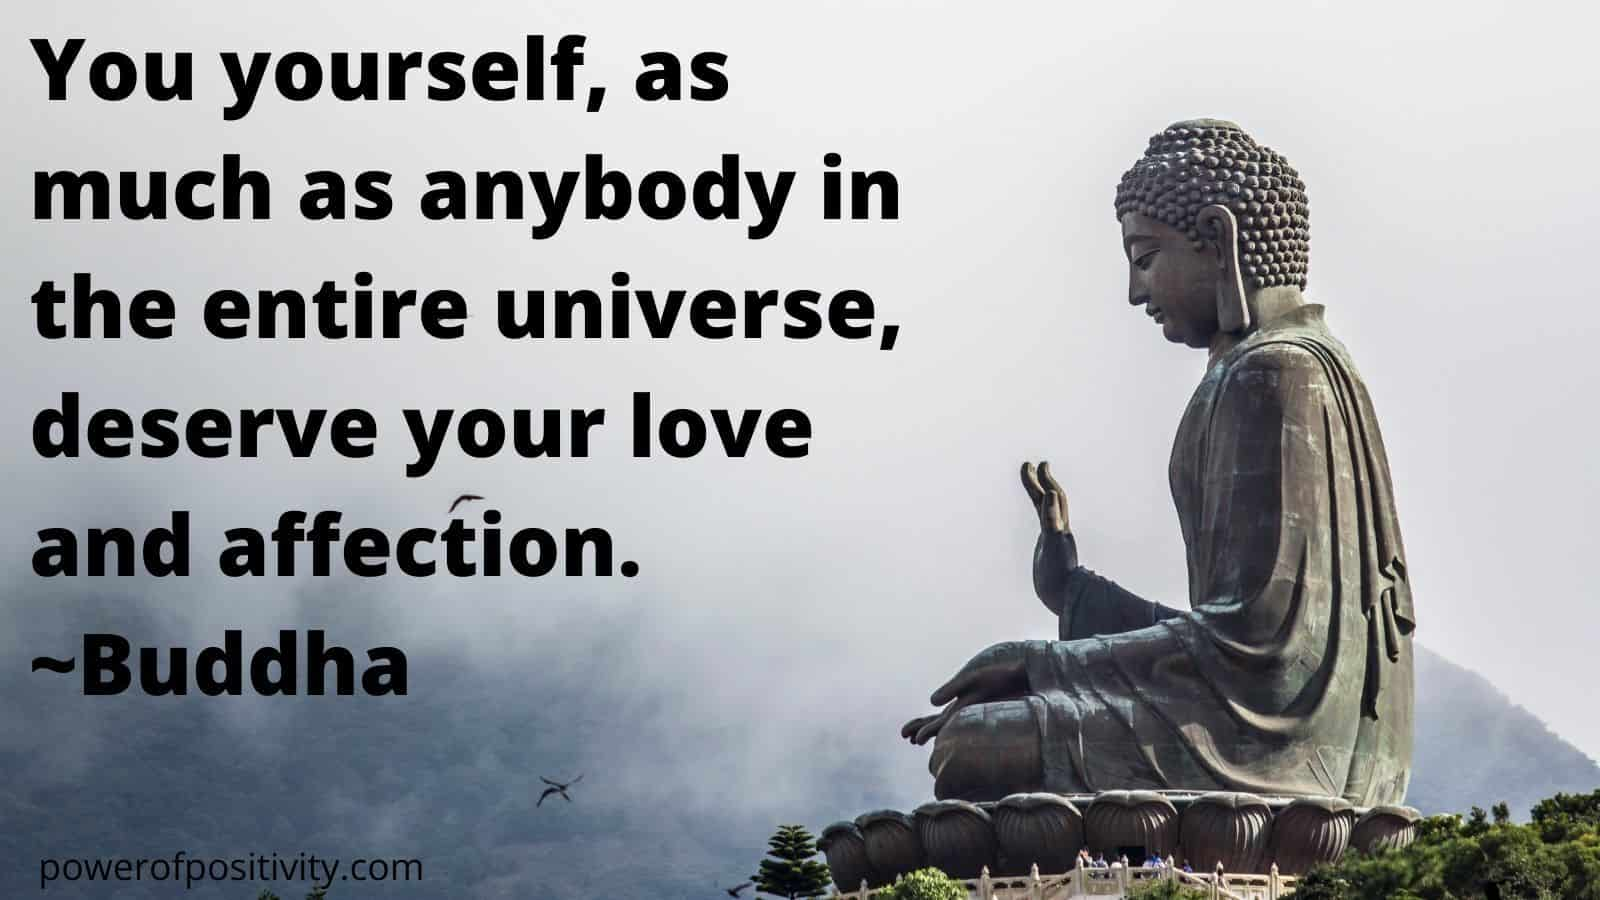 15 Short Inspiring Quotes For Boosting Self Confidence 5 Min Read